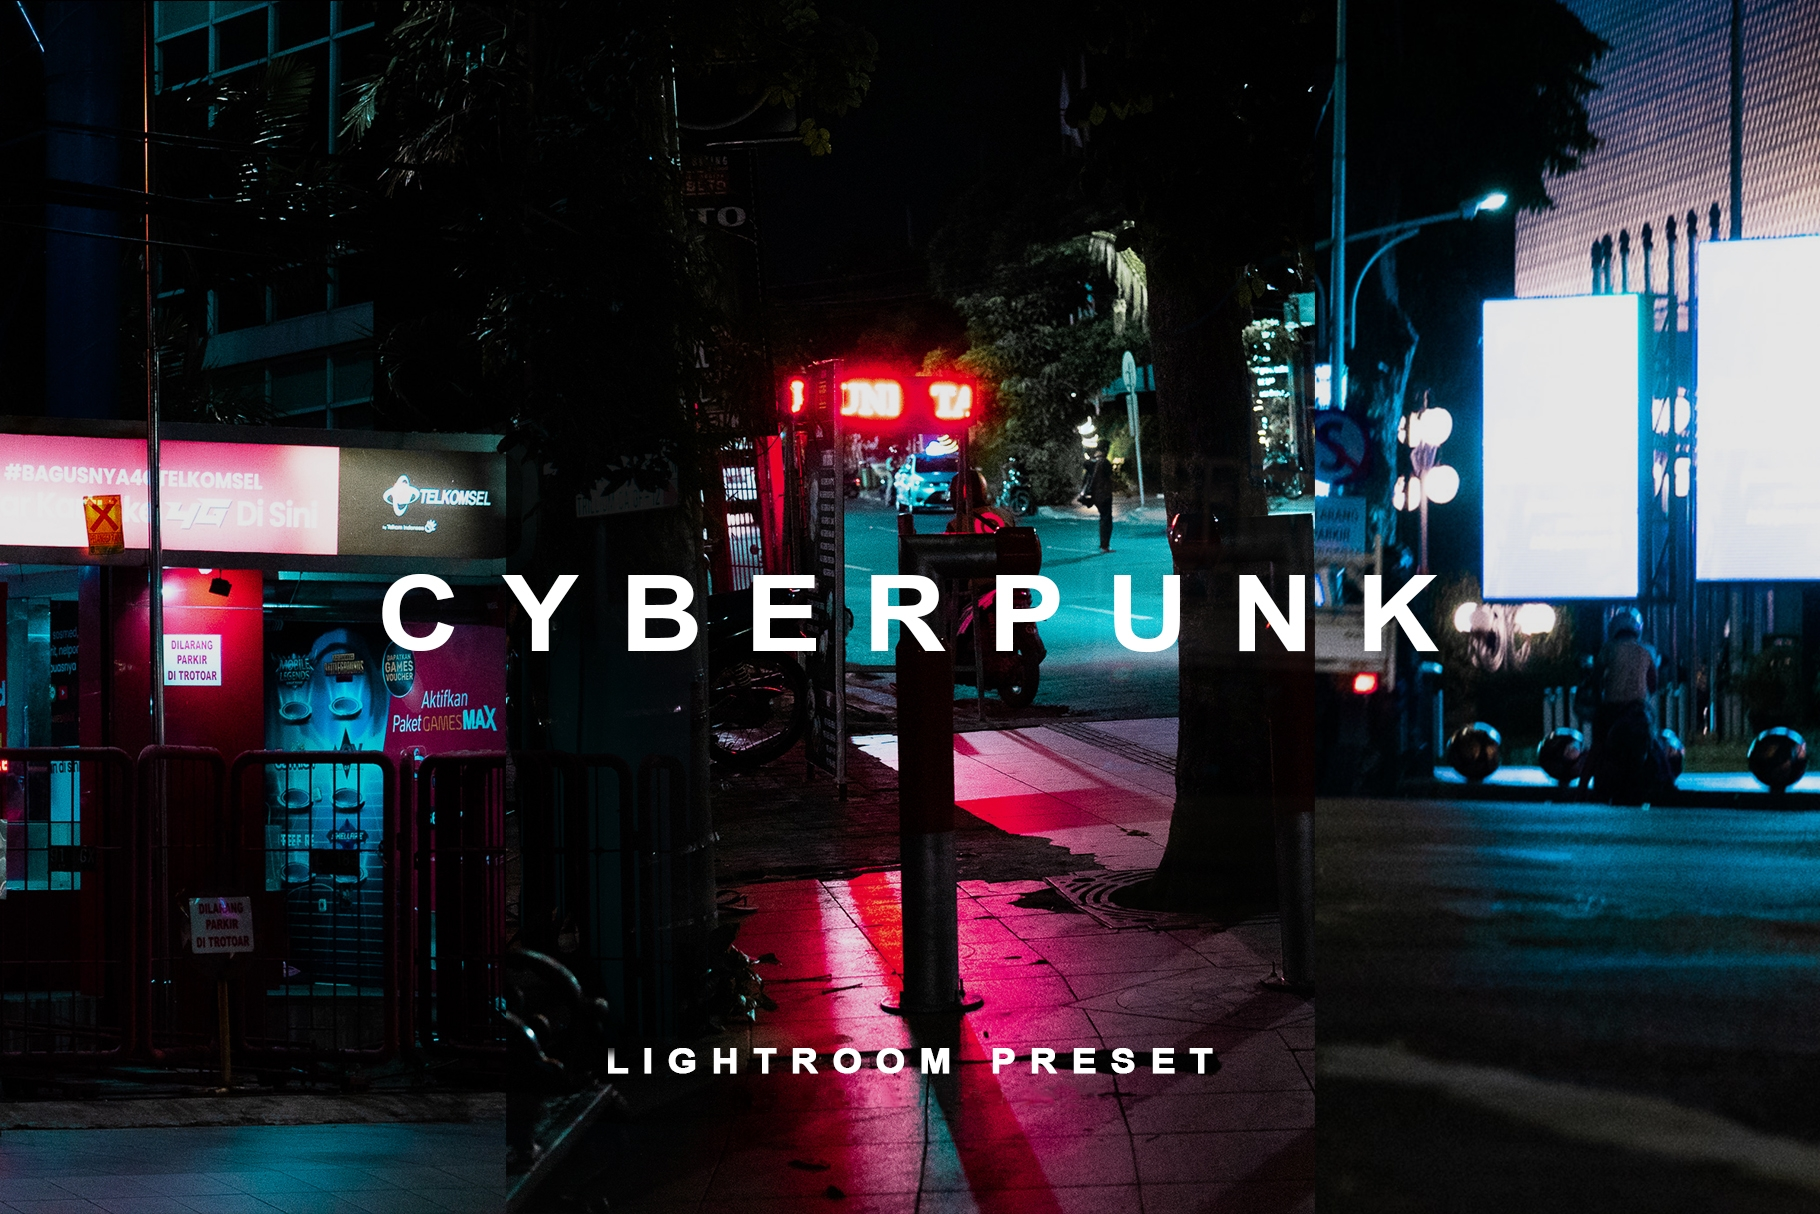 I will professionally retouch your photo into the cyberpunk effect, FiverrBox